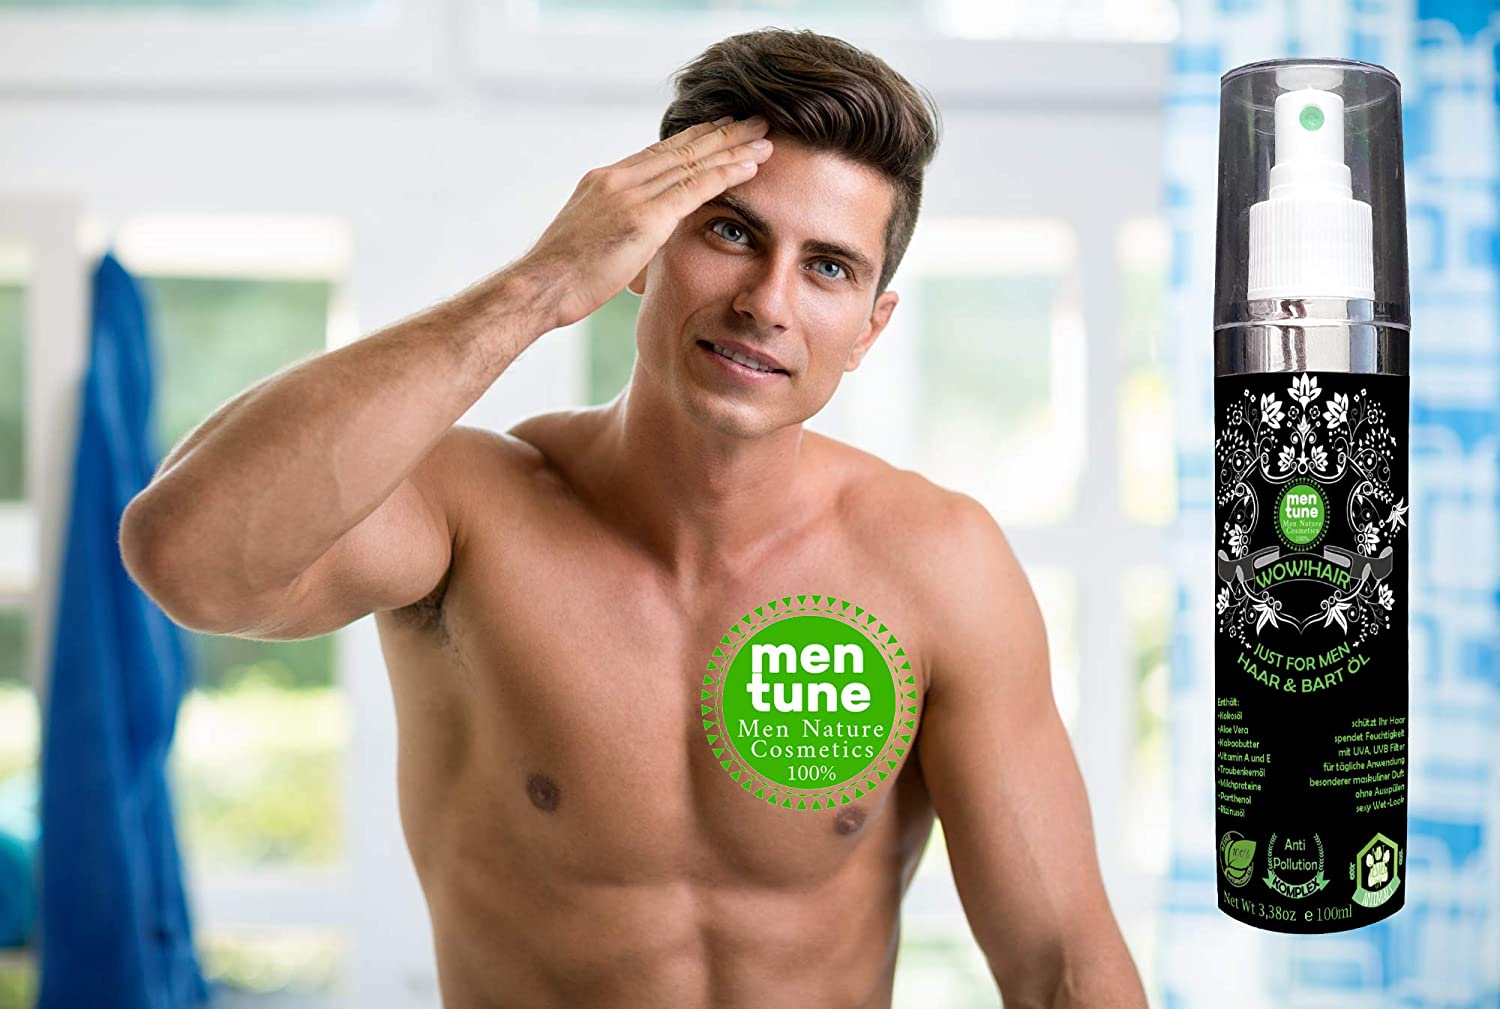 MenTune WOWHAIR Mann for men Bart & Haar Wachstums Öl Parfum